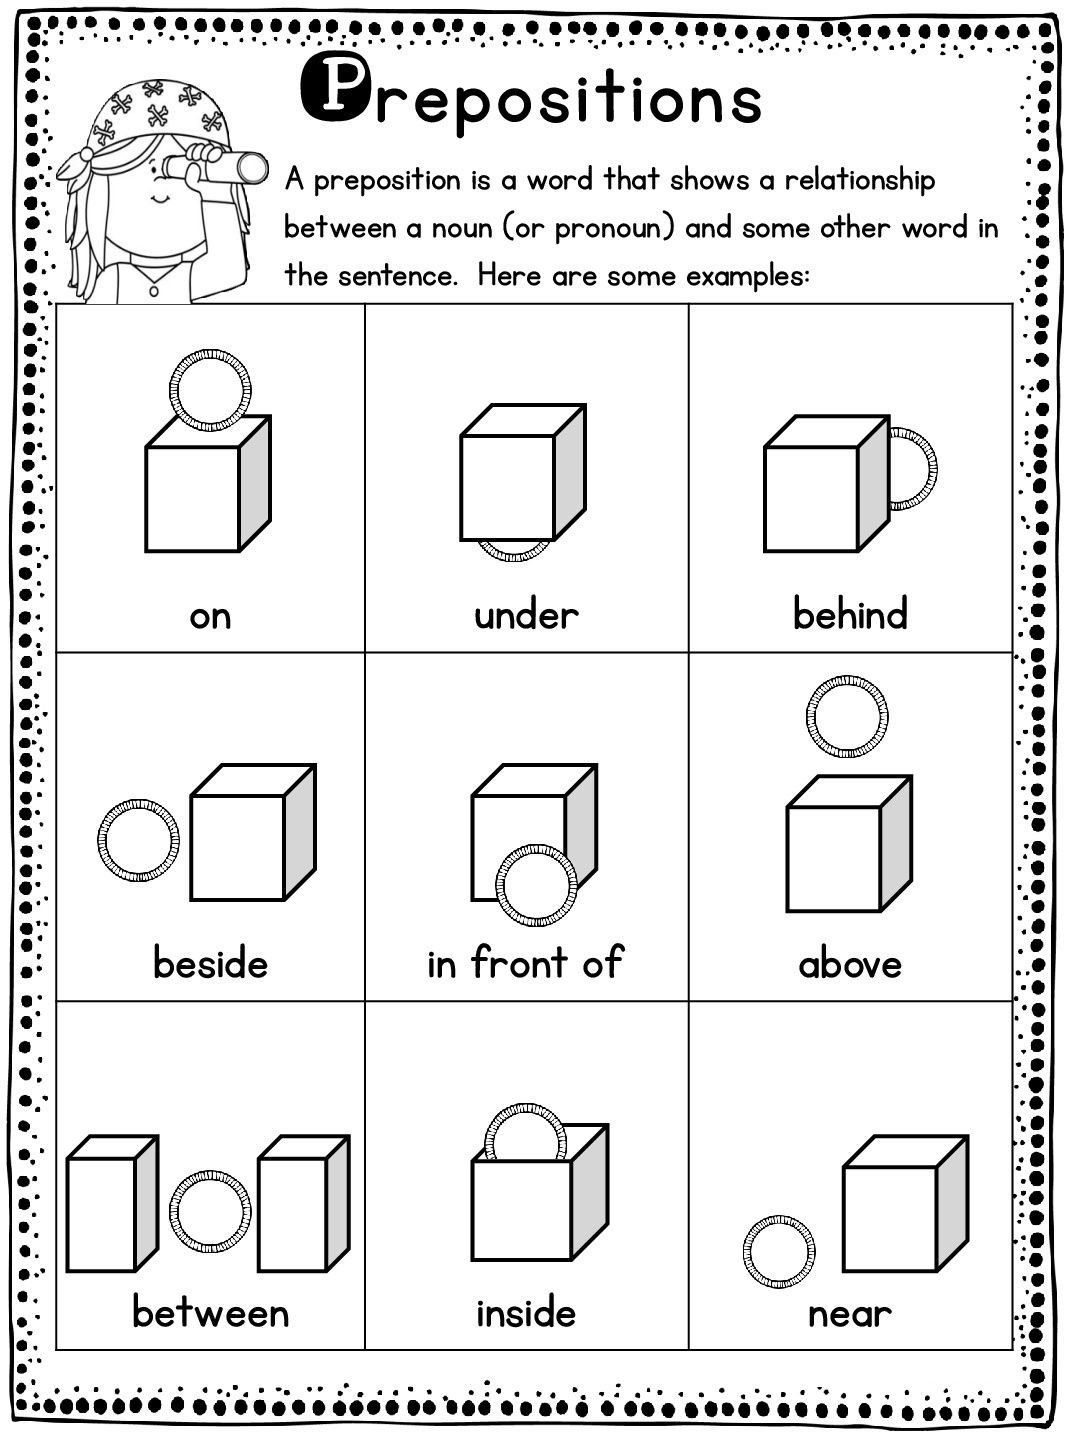 Preposition Worksheets For Kindergarten In